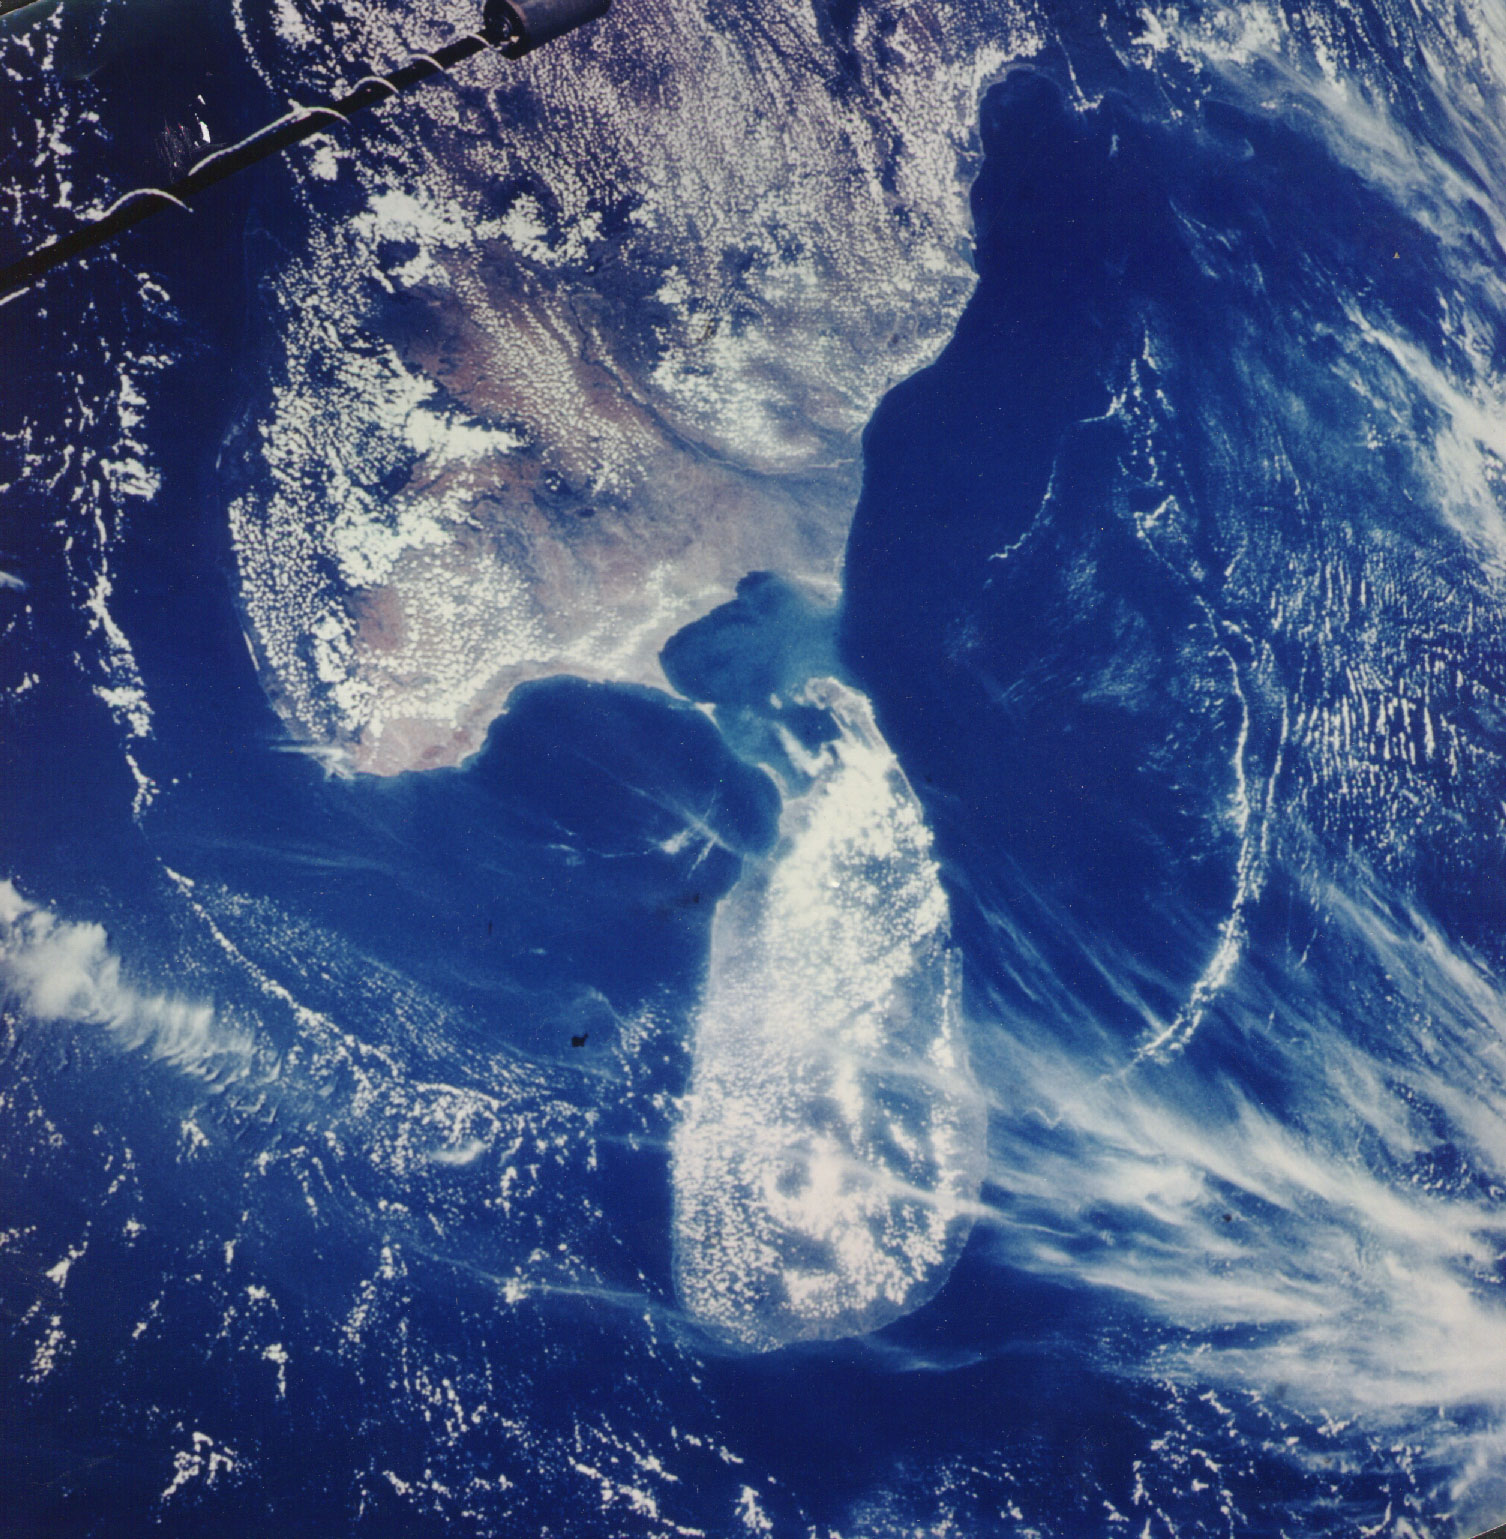 Sri Lanka, also known as India's Teardrop and the Pearl of the Indian Ocean, is an extension of peninsular India that got separated from the mainland.